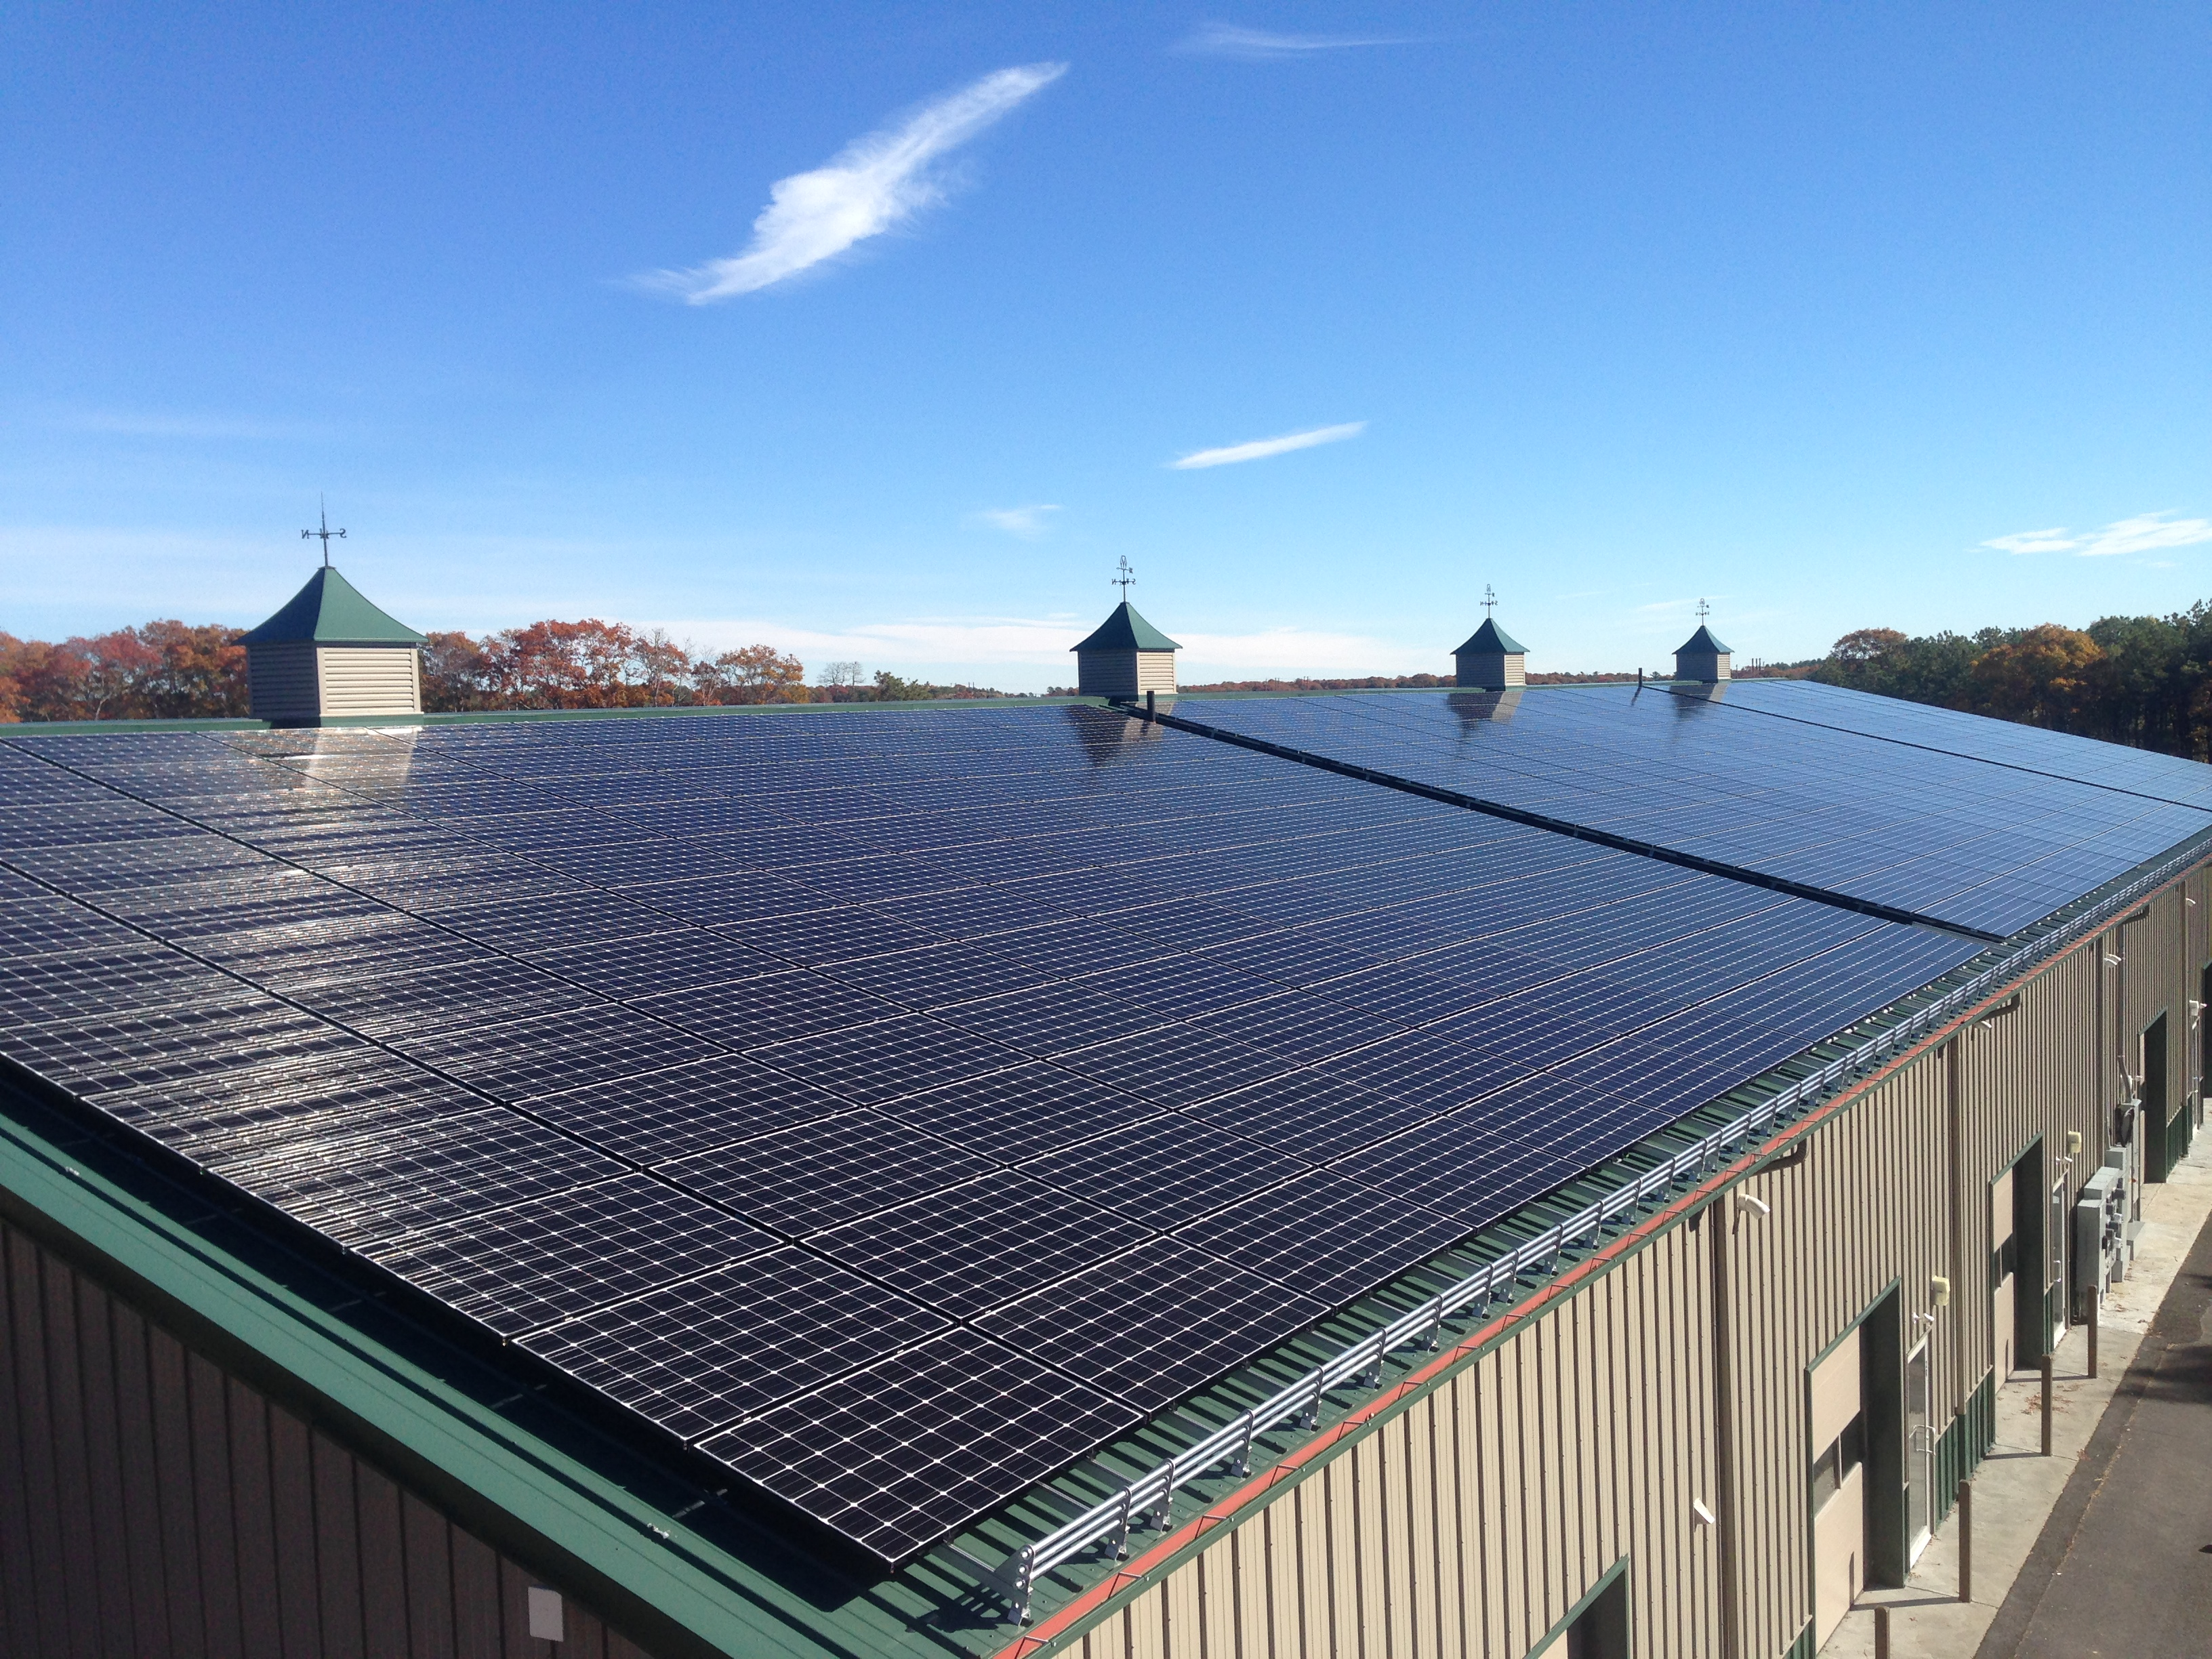 Commercial Solar Panel Wiring Simple Diagram Site Energy Systems Installation On Cape Cod Rising Circuit